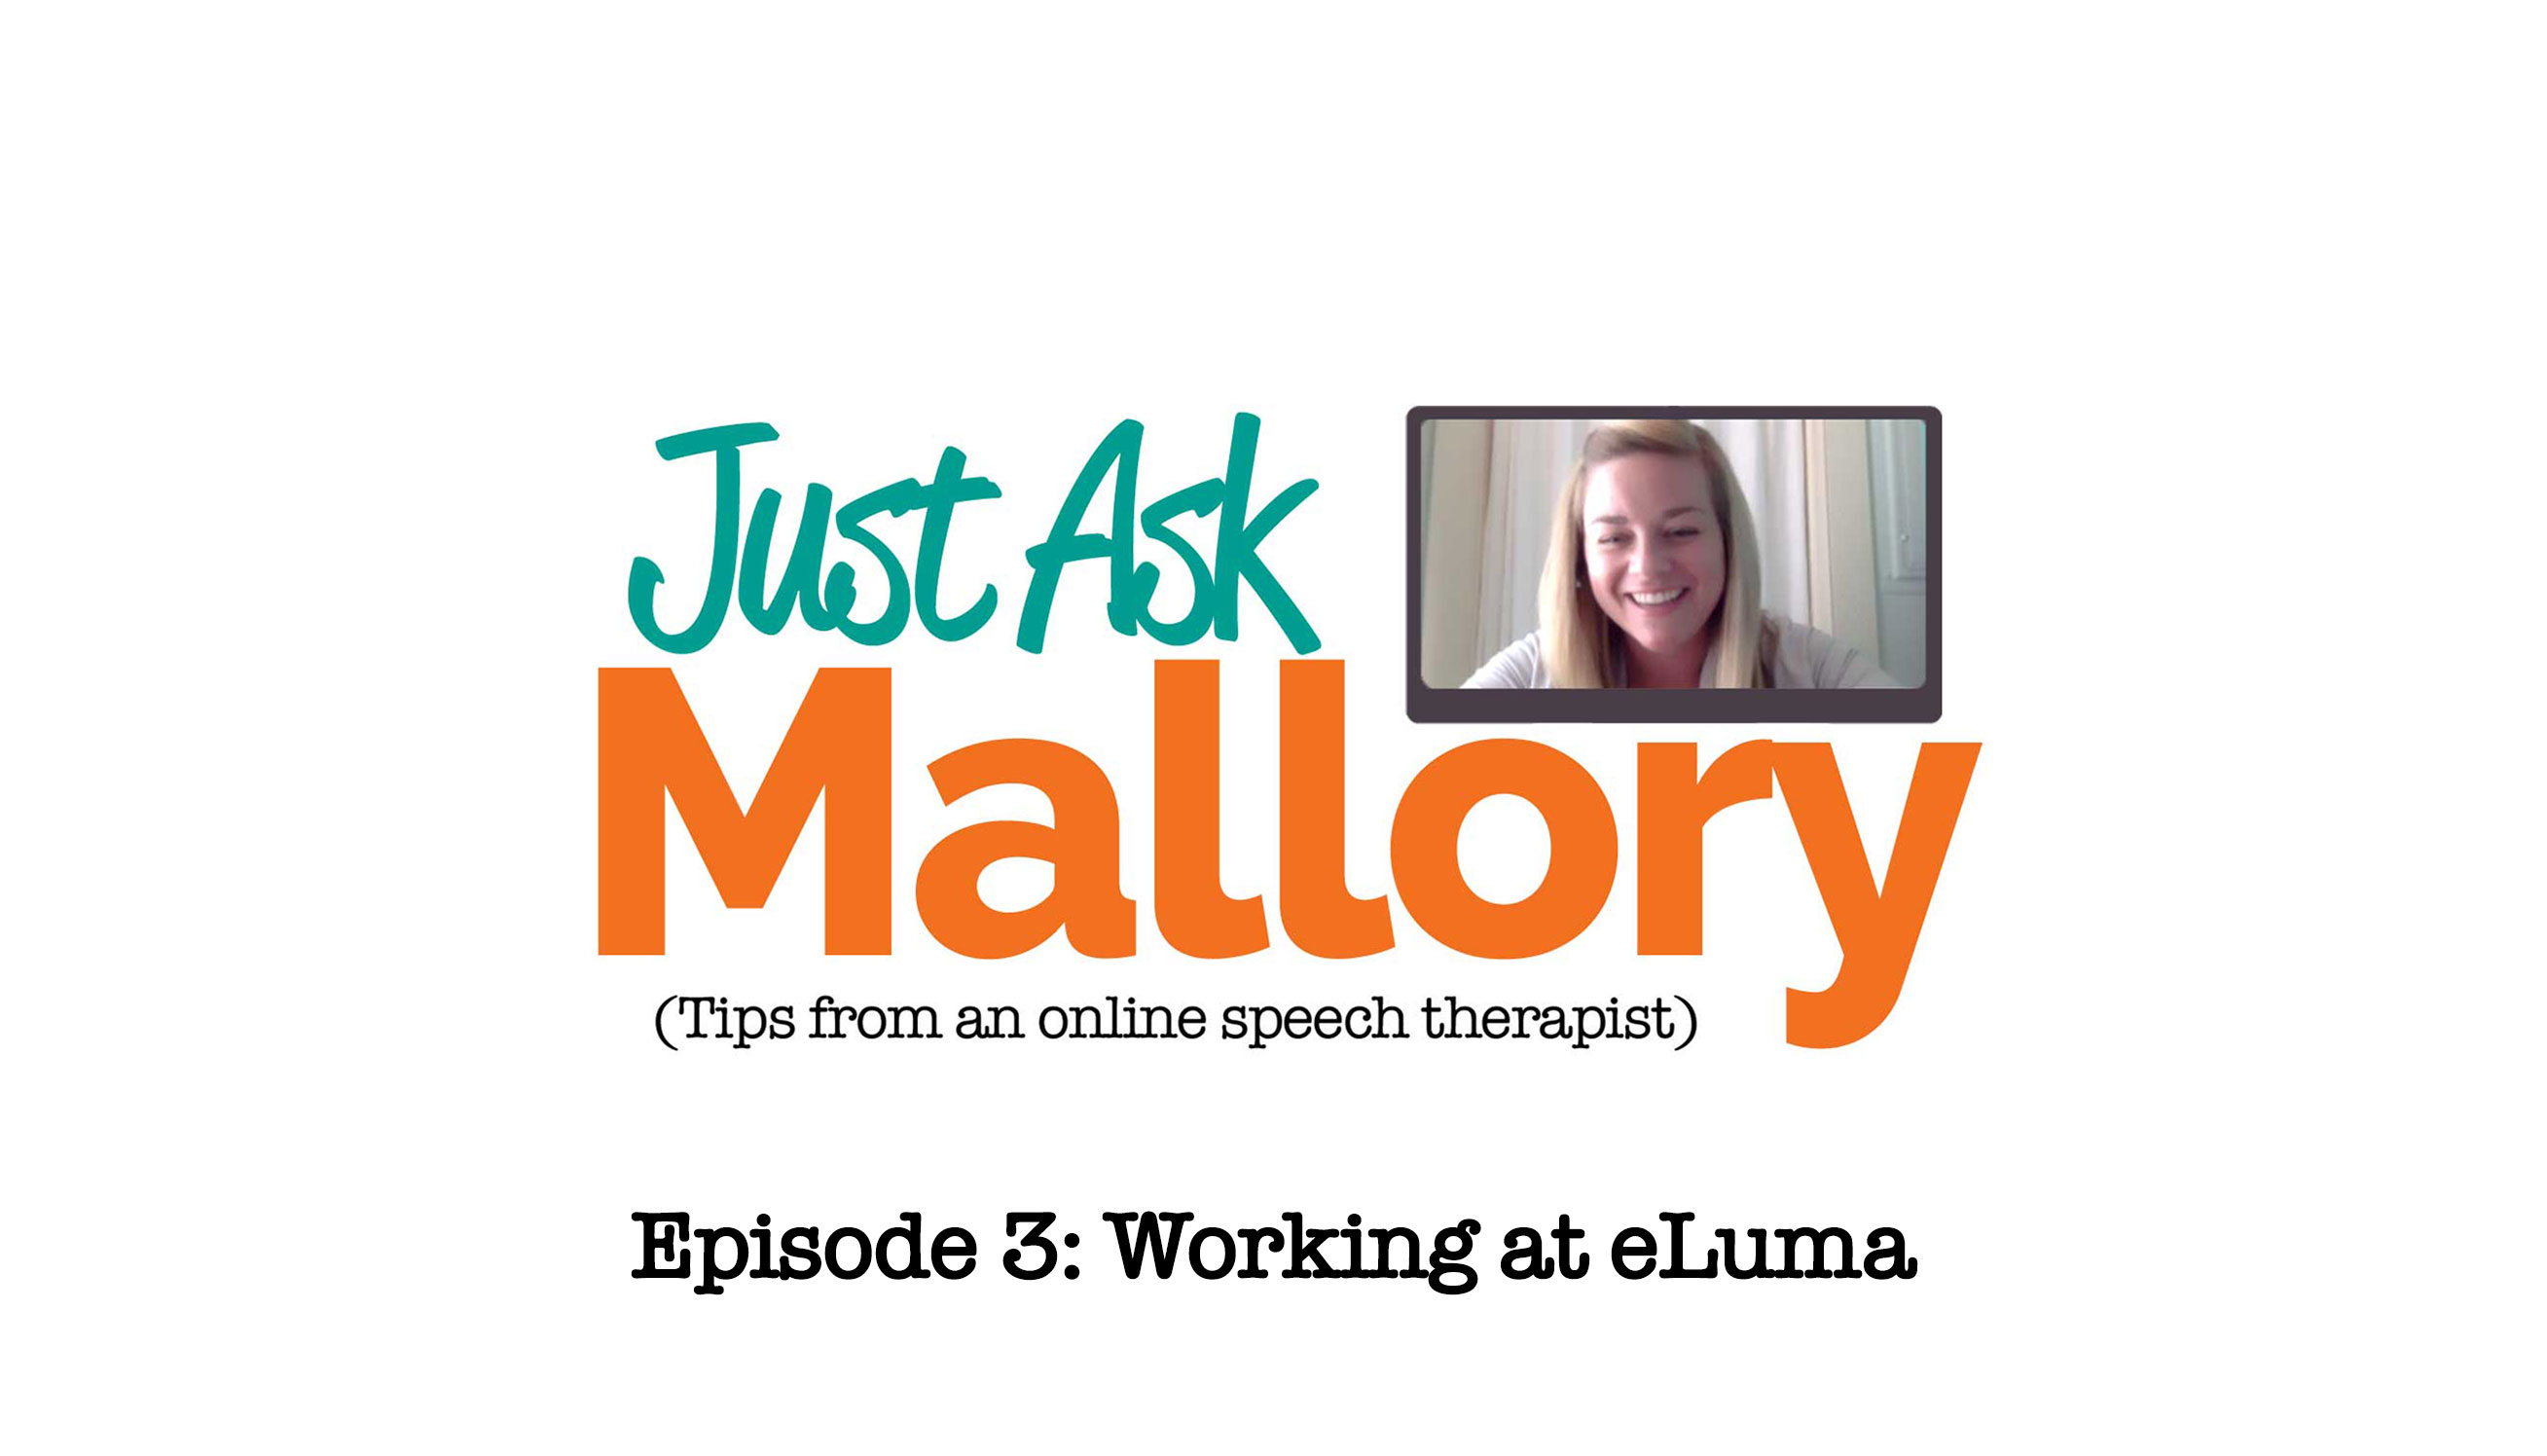 Just Ask Mallory - episode 3